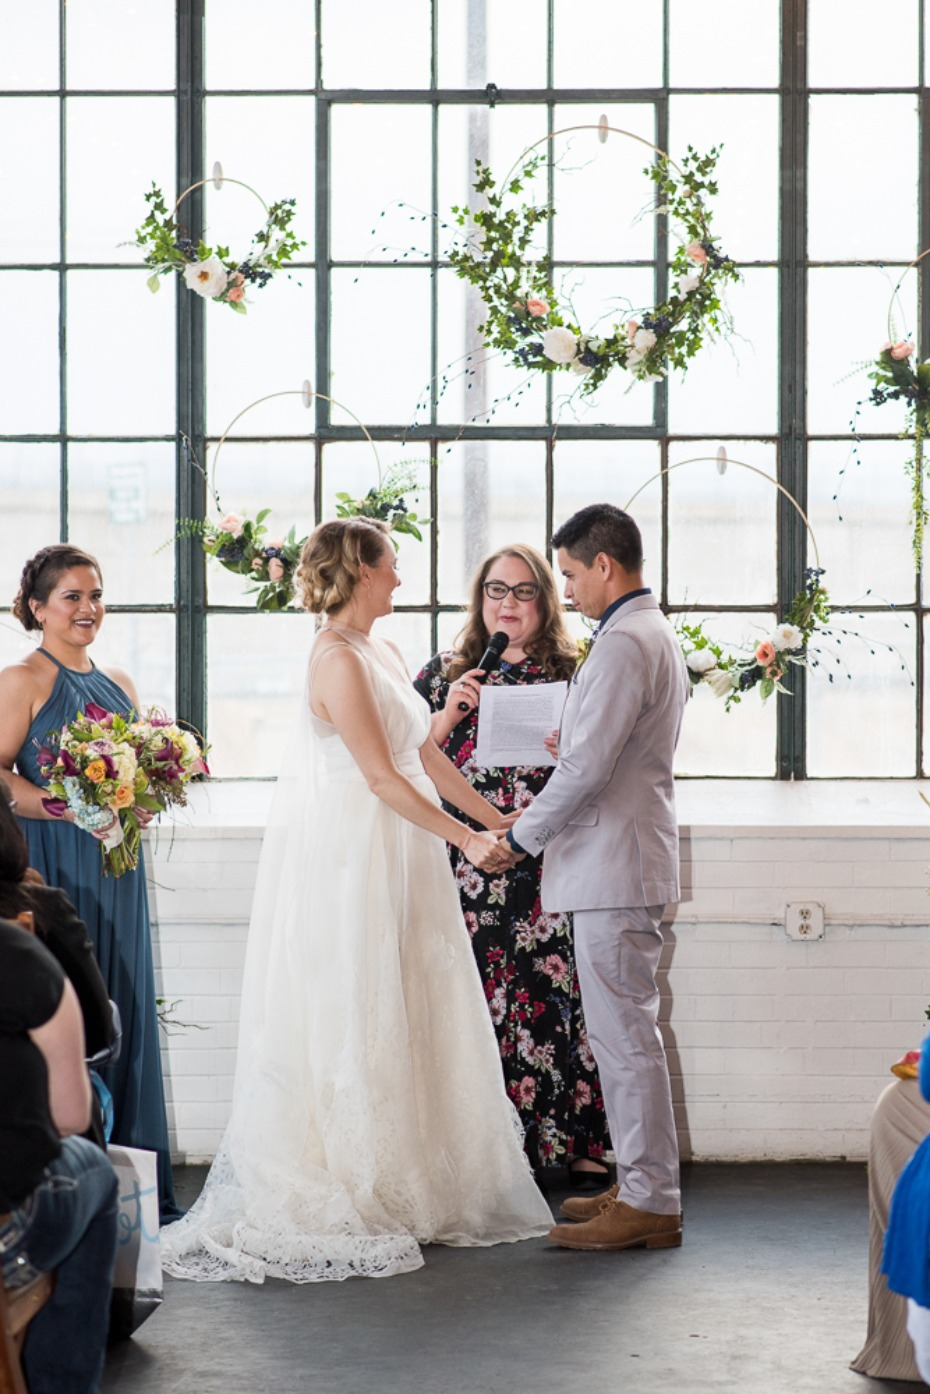 wedding ceremony with a modern vibe